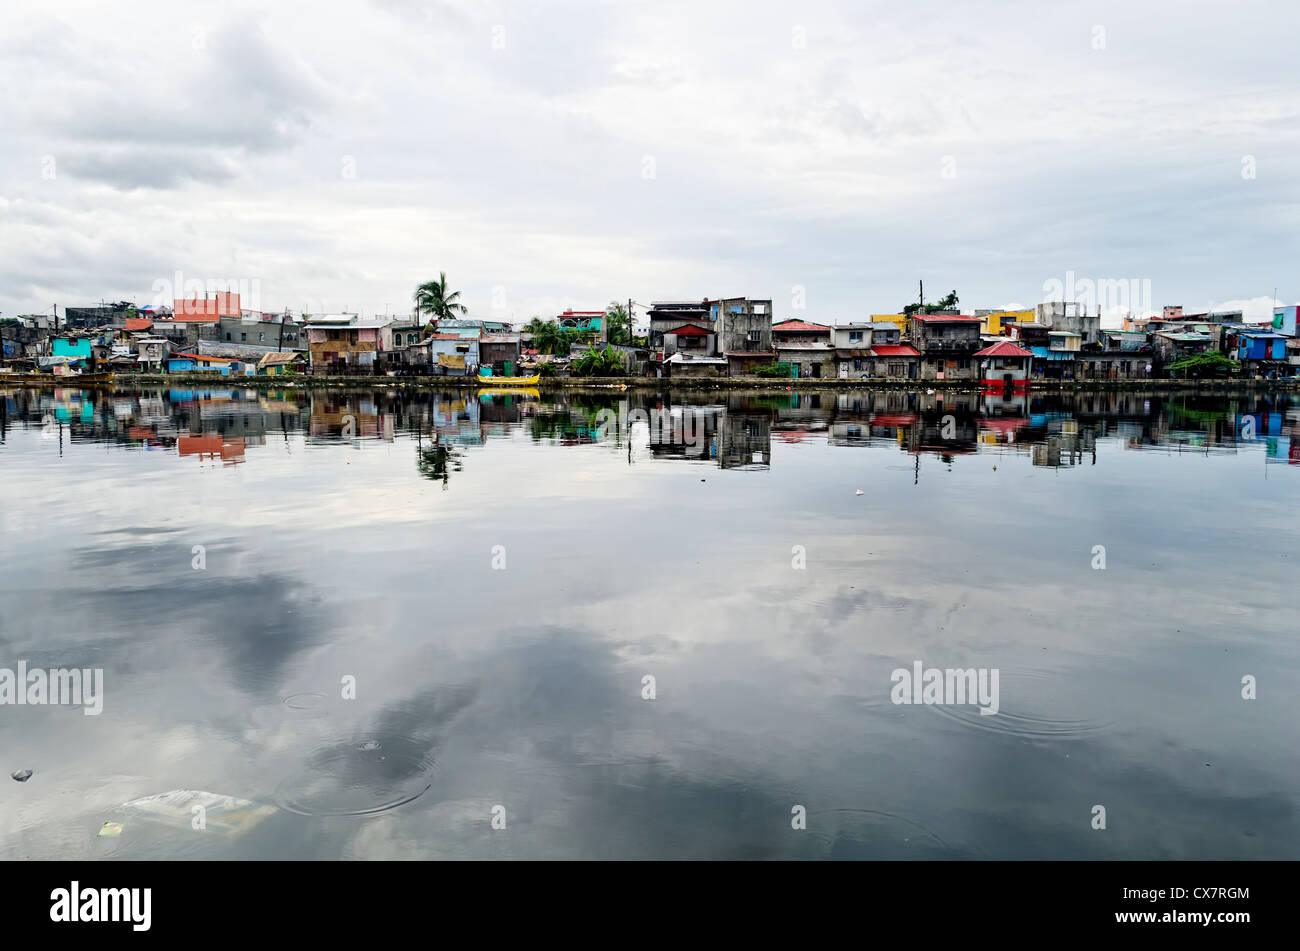 Rows of houses along the Malabon River in Metro Manila, Philippines - Stock Image